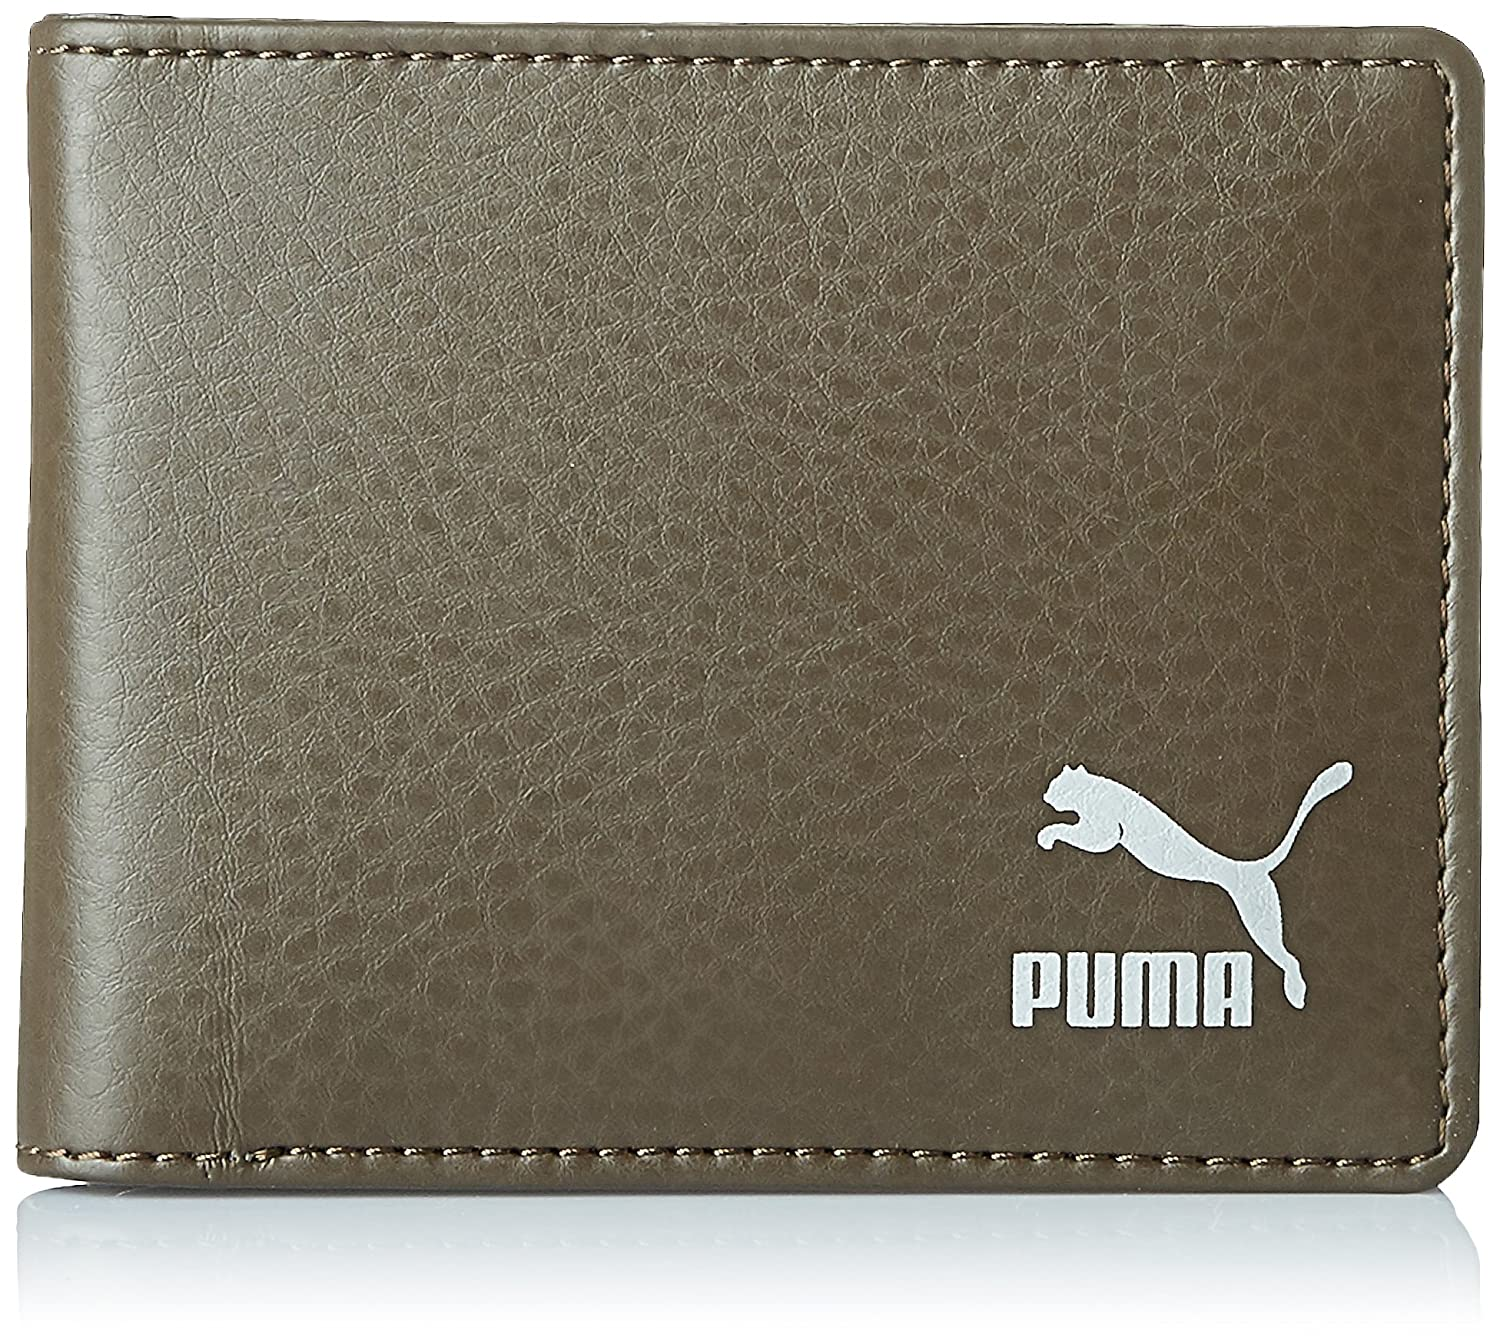 Puma Brown Men's Wallet (7460502)